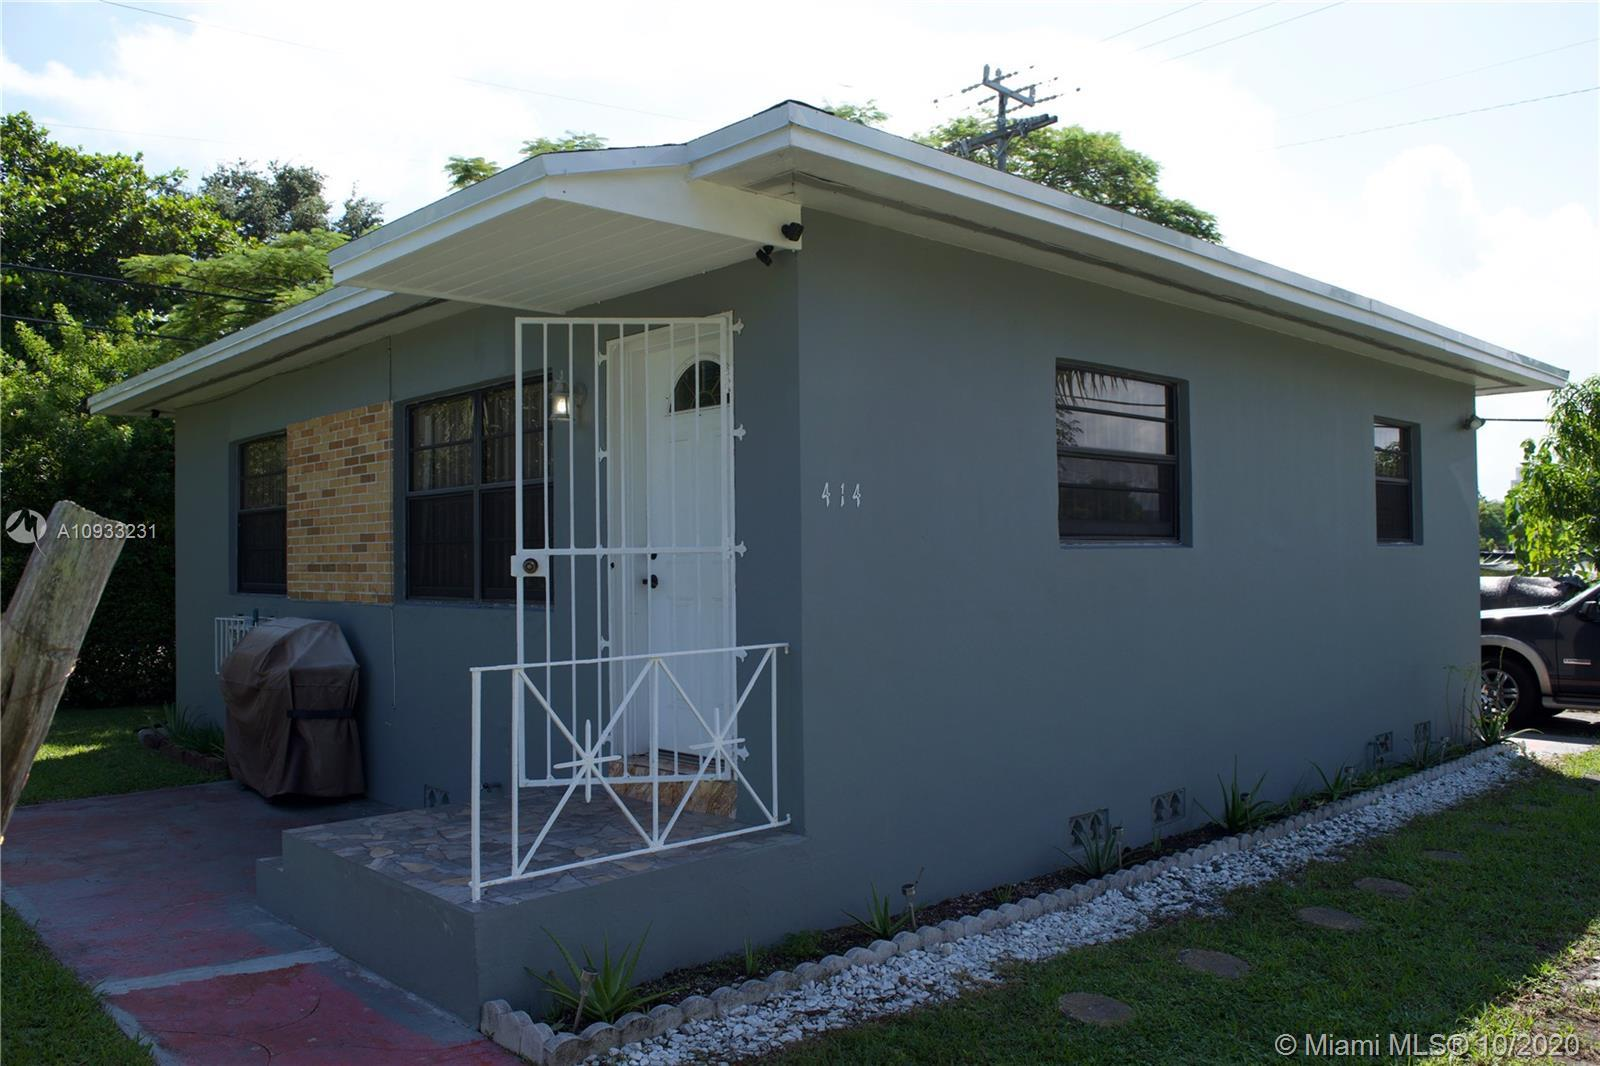 Well kept home in the area of design district of Miami, Fl. accessible to Downtown, Biscayne Blvd. a